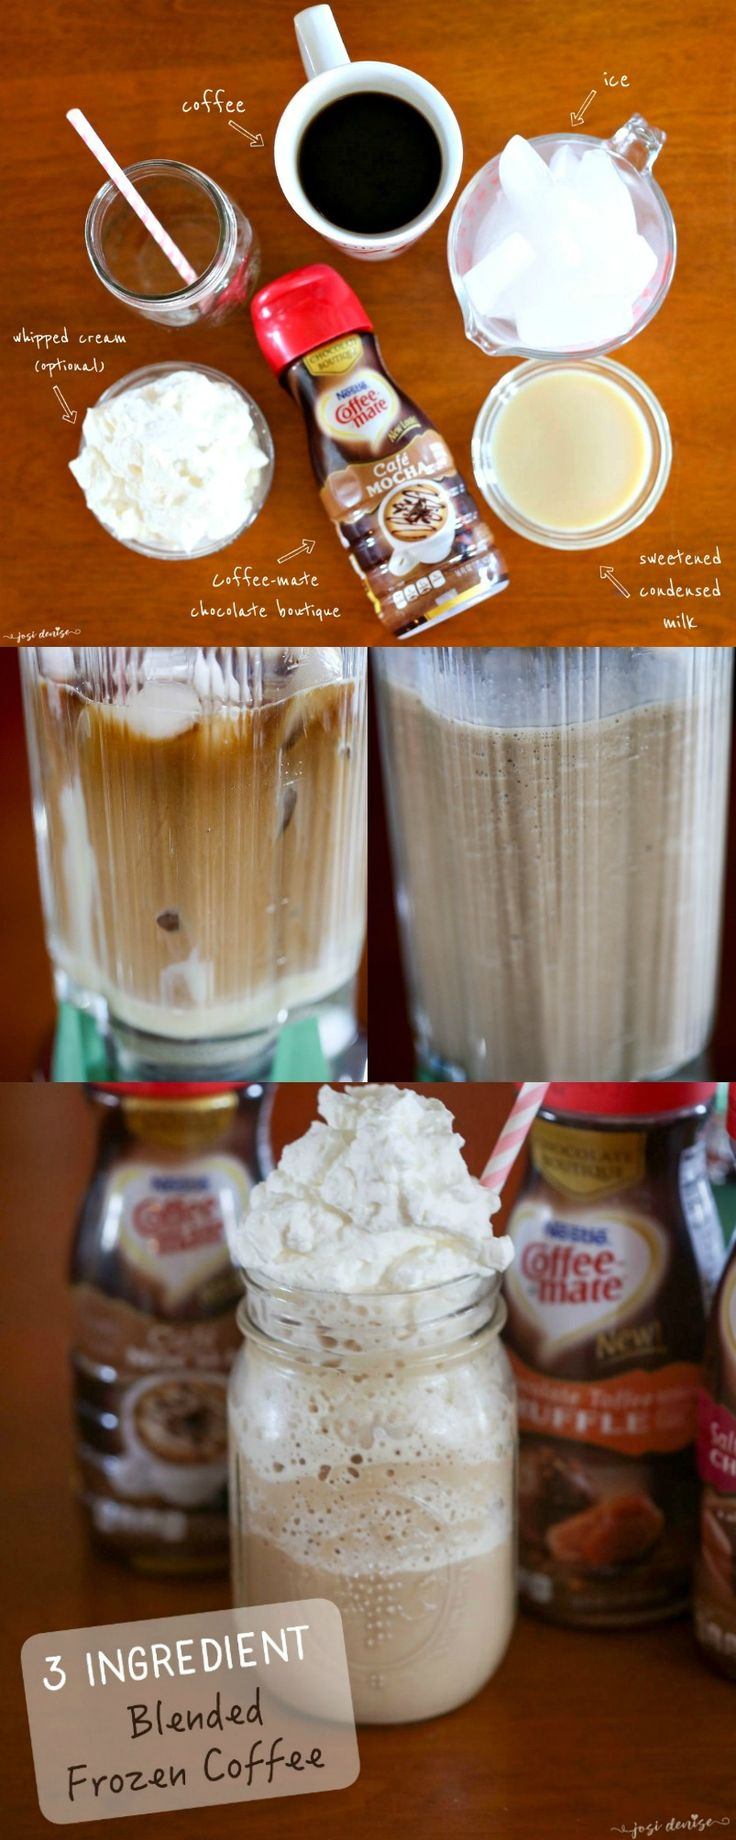 Frozen blended coffee recipe using Chocolate Boutique from Coffee-mate, perfect premium iced coffee just like chocolate dessert, to sip during summer or on the go. Copycat mocha frappucino recipe with (Chocolate Milkshake Ninja)